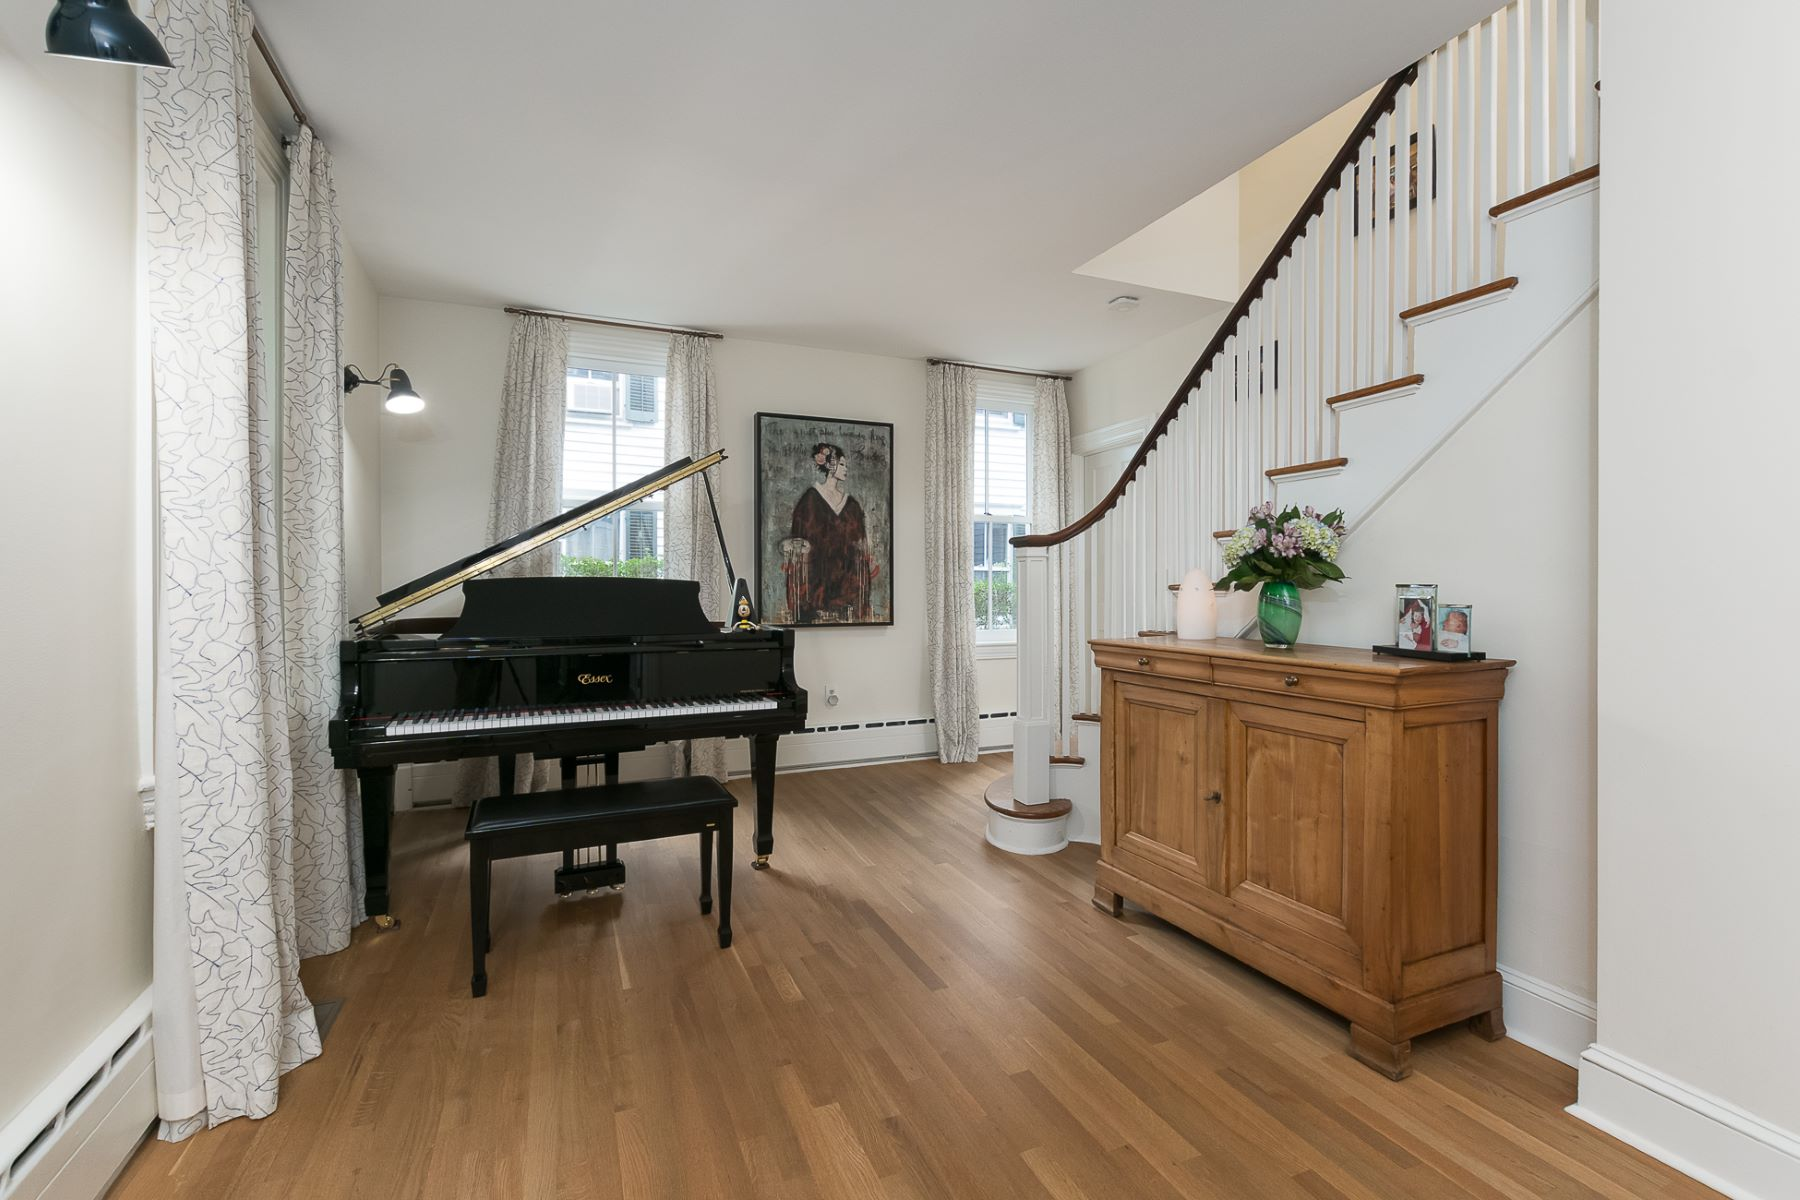 Additional photo for property listing at 19th Century Charm, 21st Century Features 132 Mercer Street, Princeton, New Jersey 08540 United States